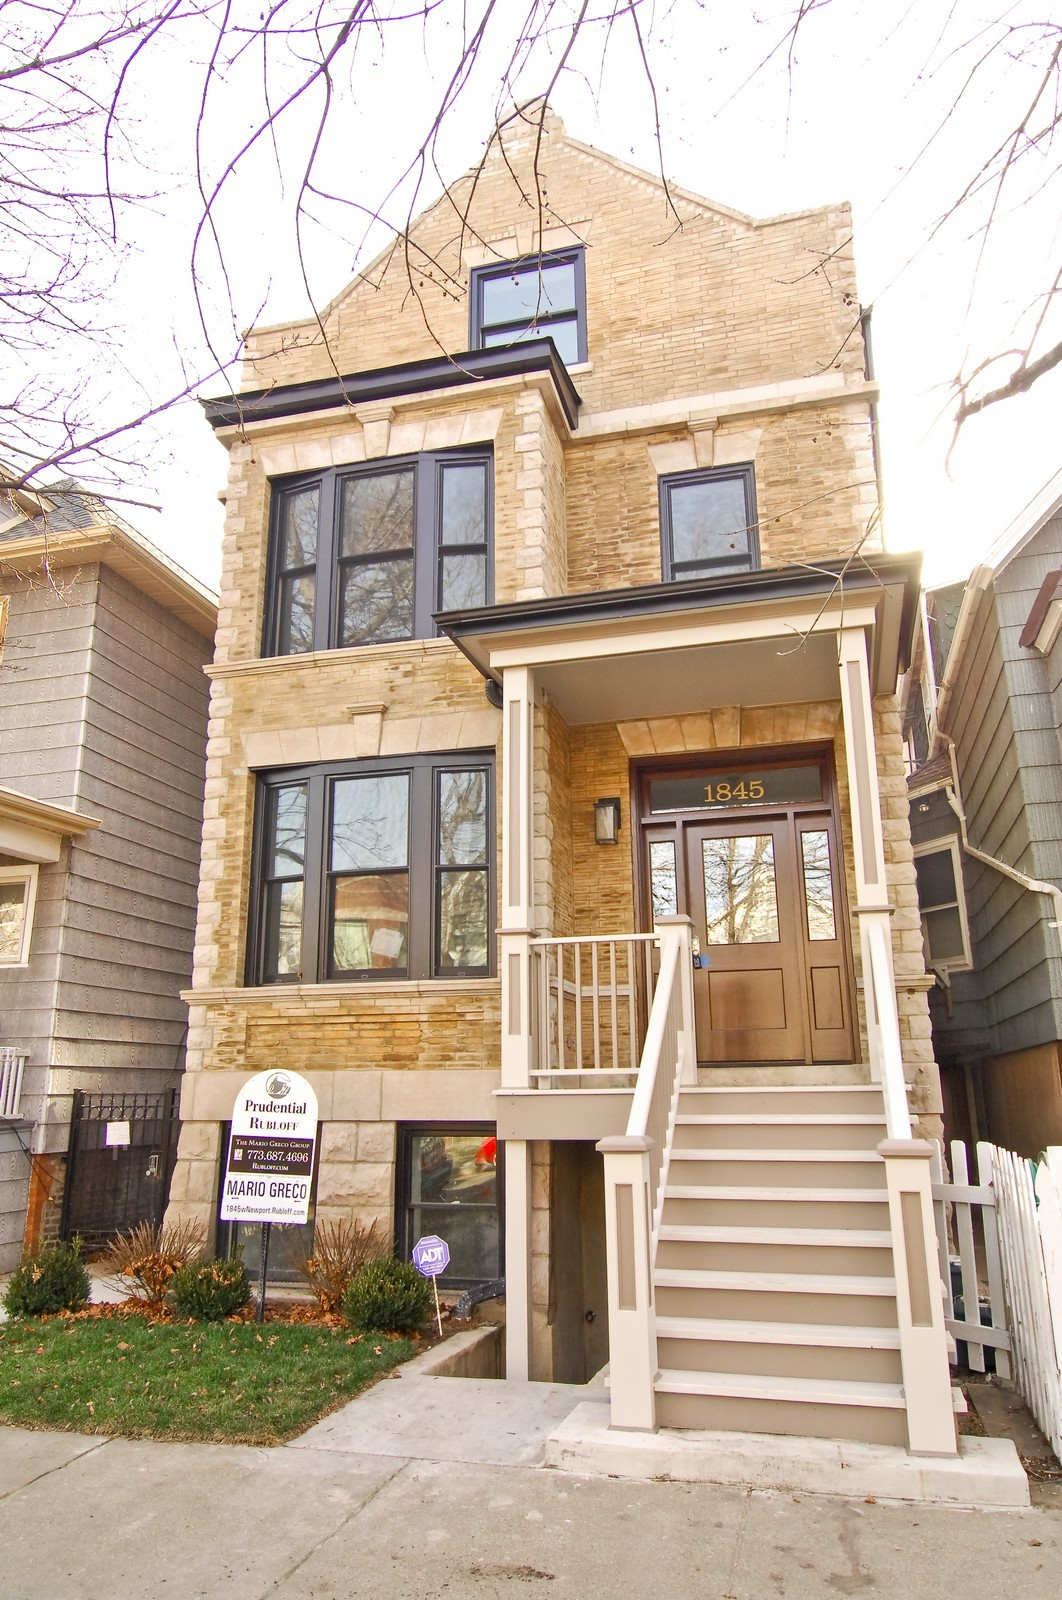 Real Estate Photography - 1845 W. Newport, Chicago, IL, 60657 - Front View